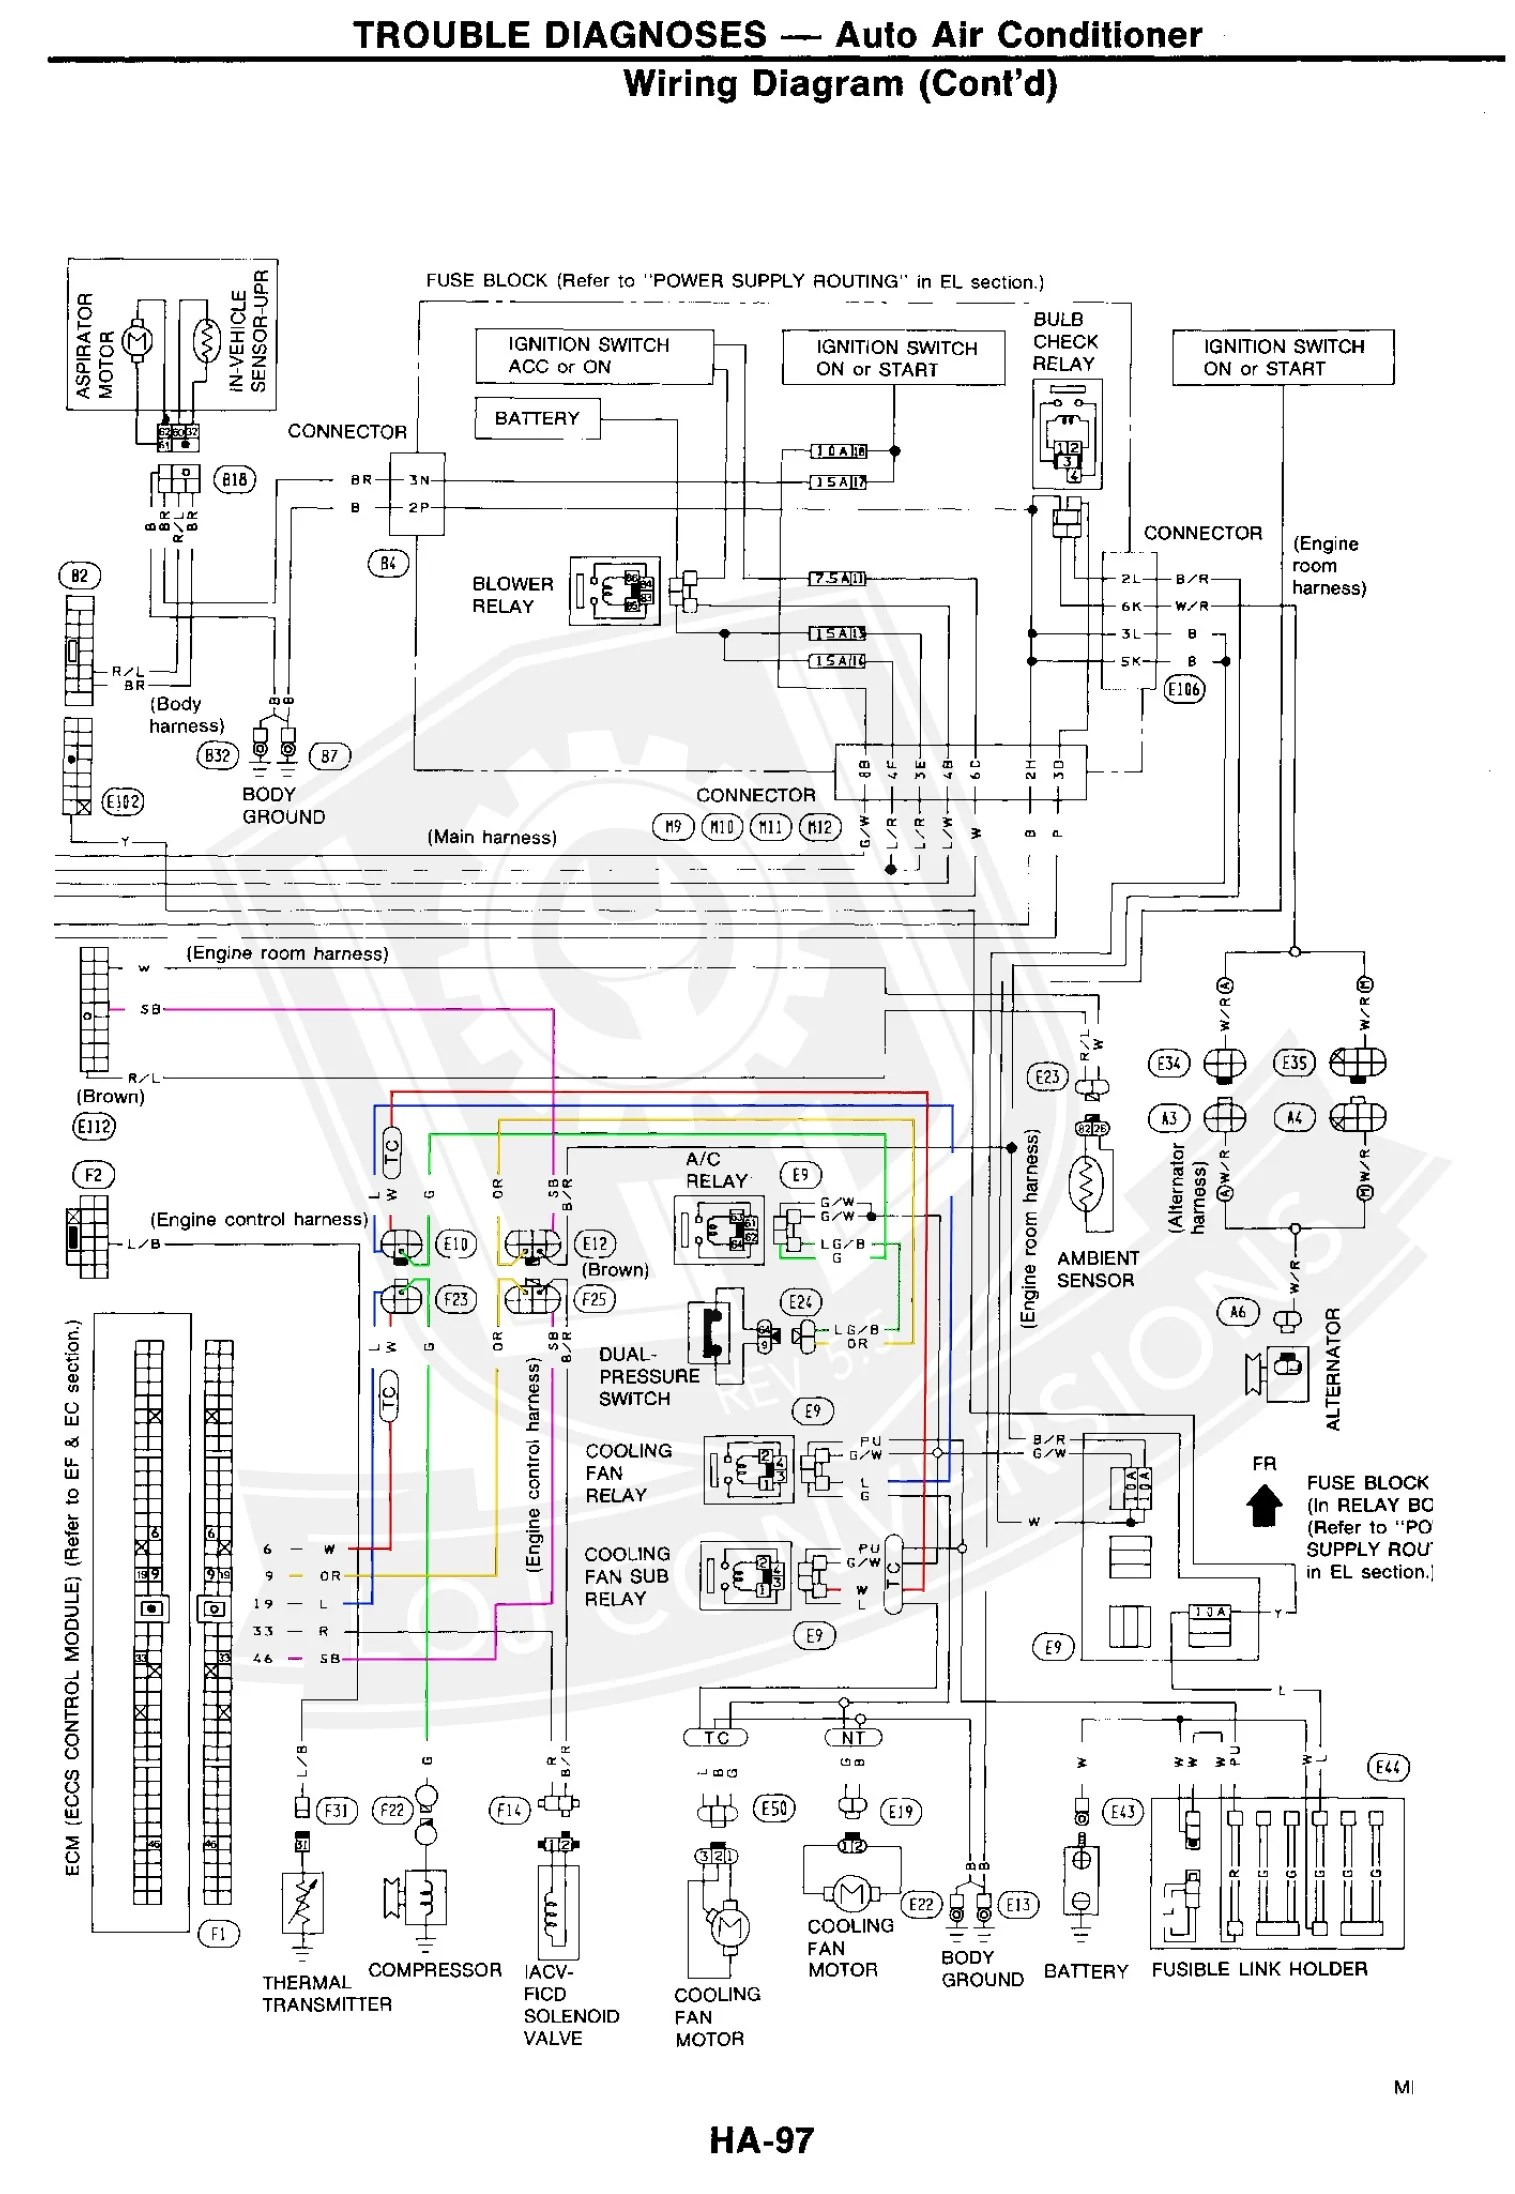 small resolution of 300zx wire diagram wiring diagram source pioneer harness diagram 300zx wire harness diagram